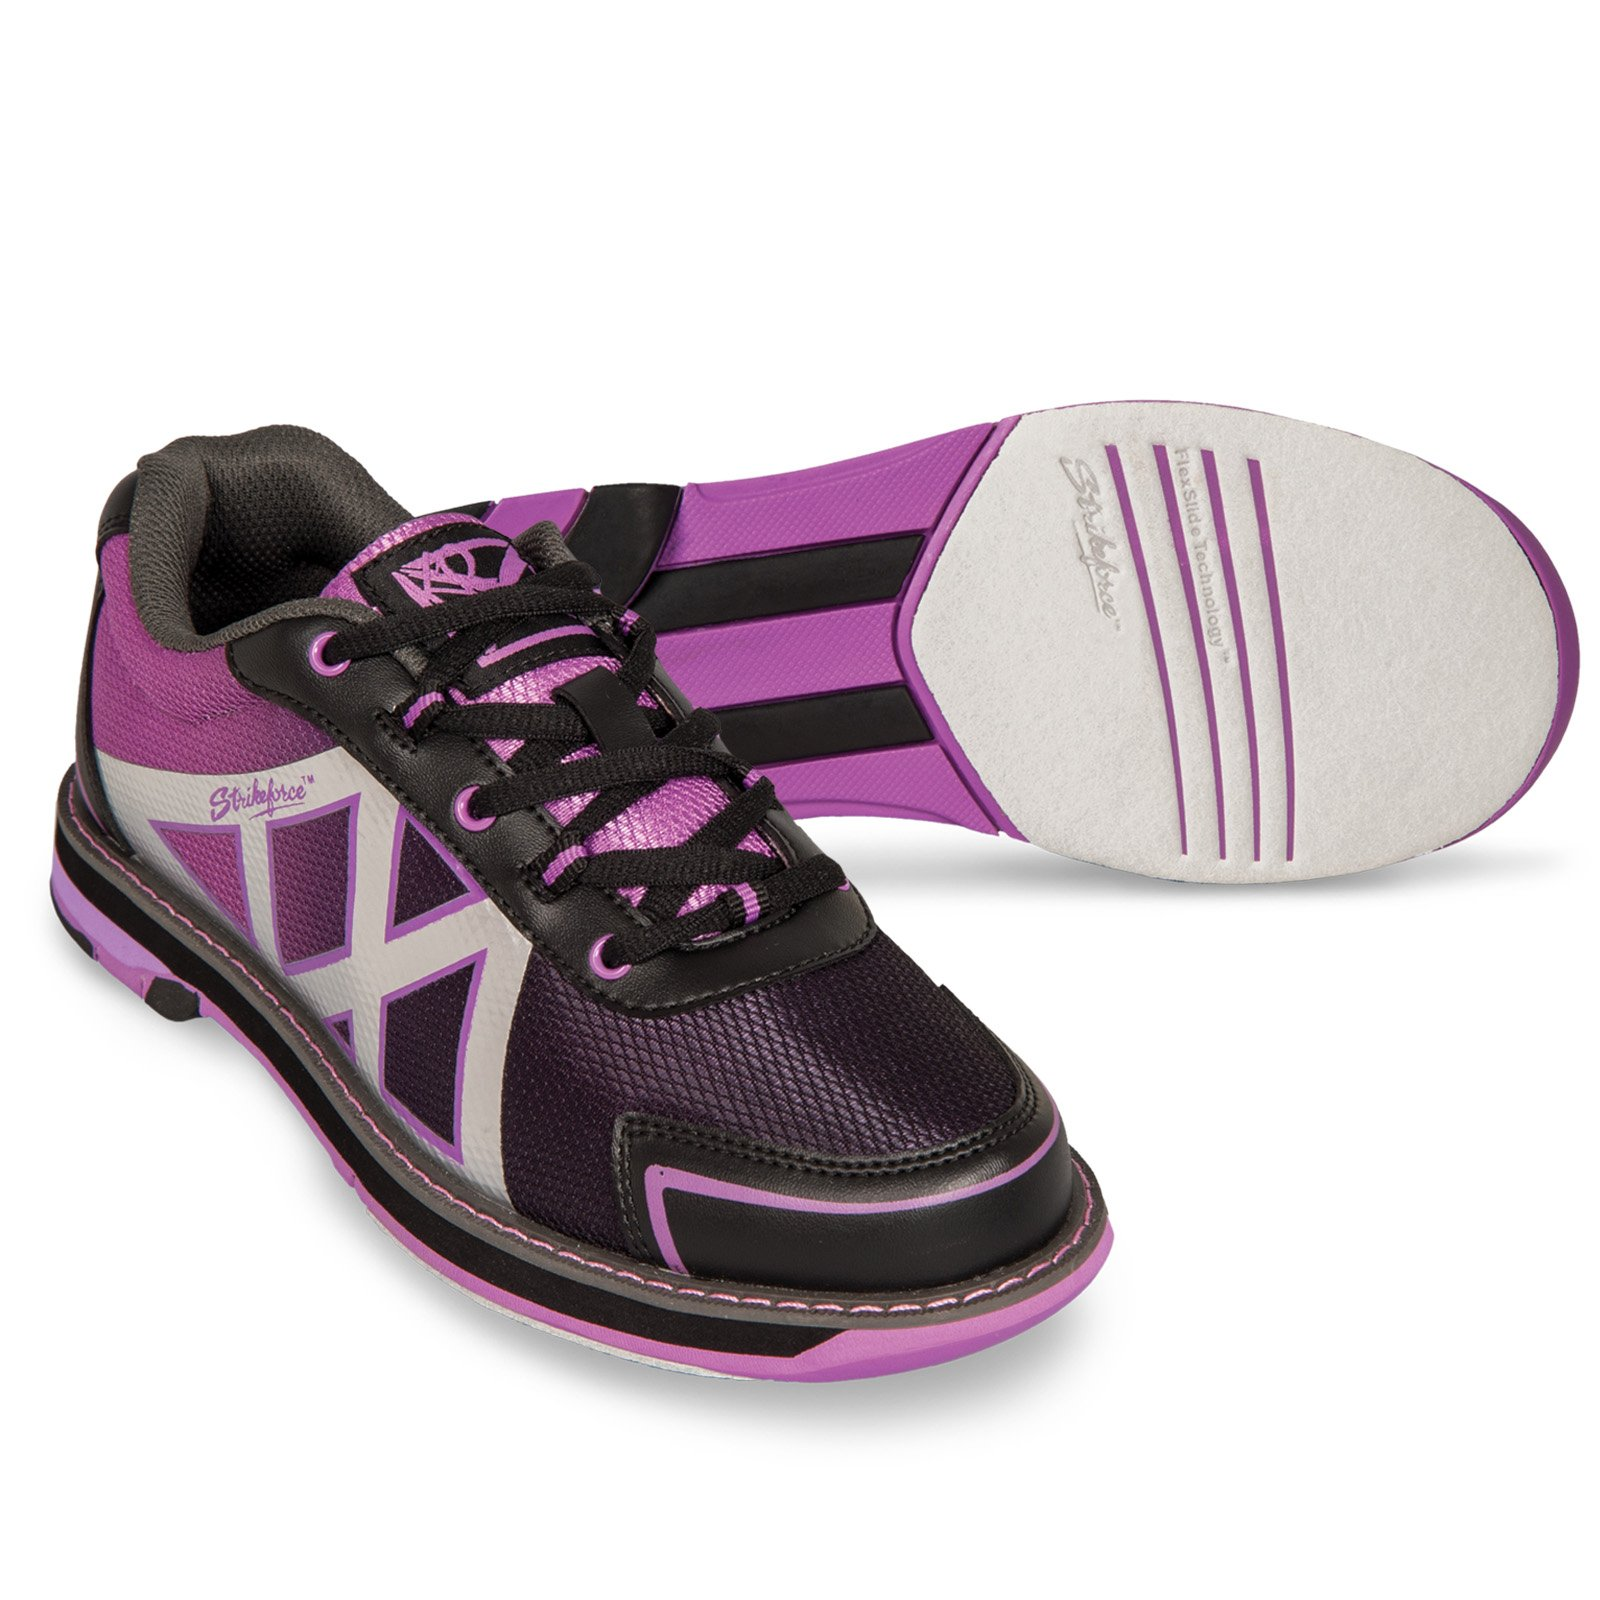 KR Kross Ladies Black Purple Size 9 by KR